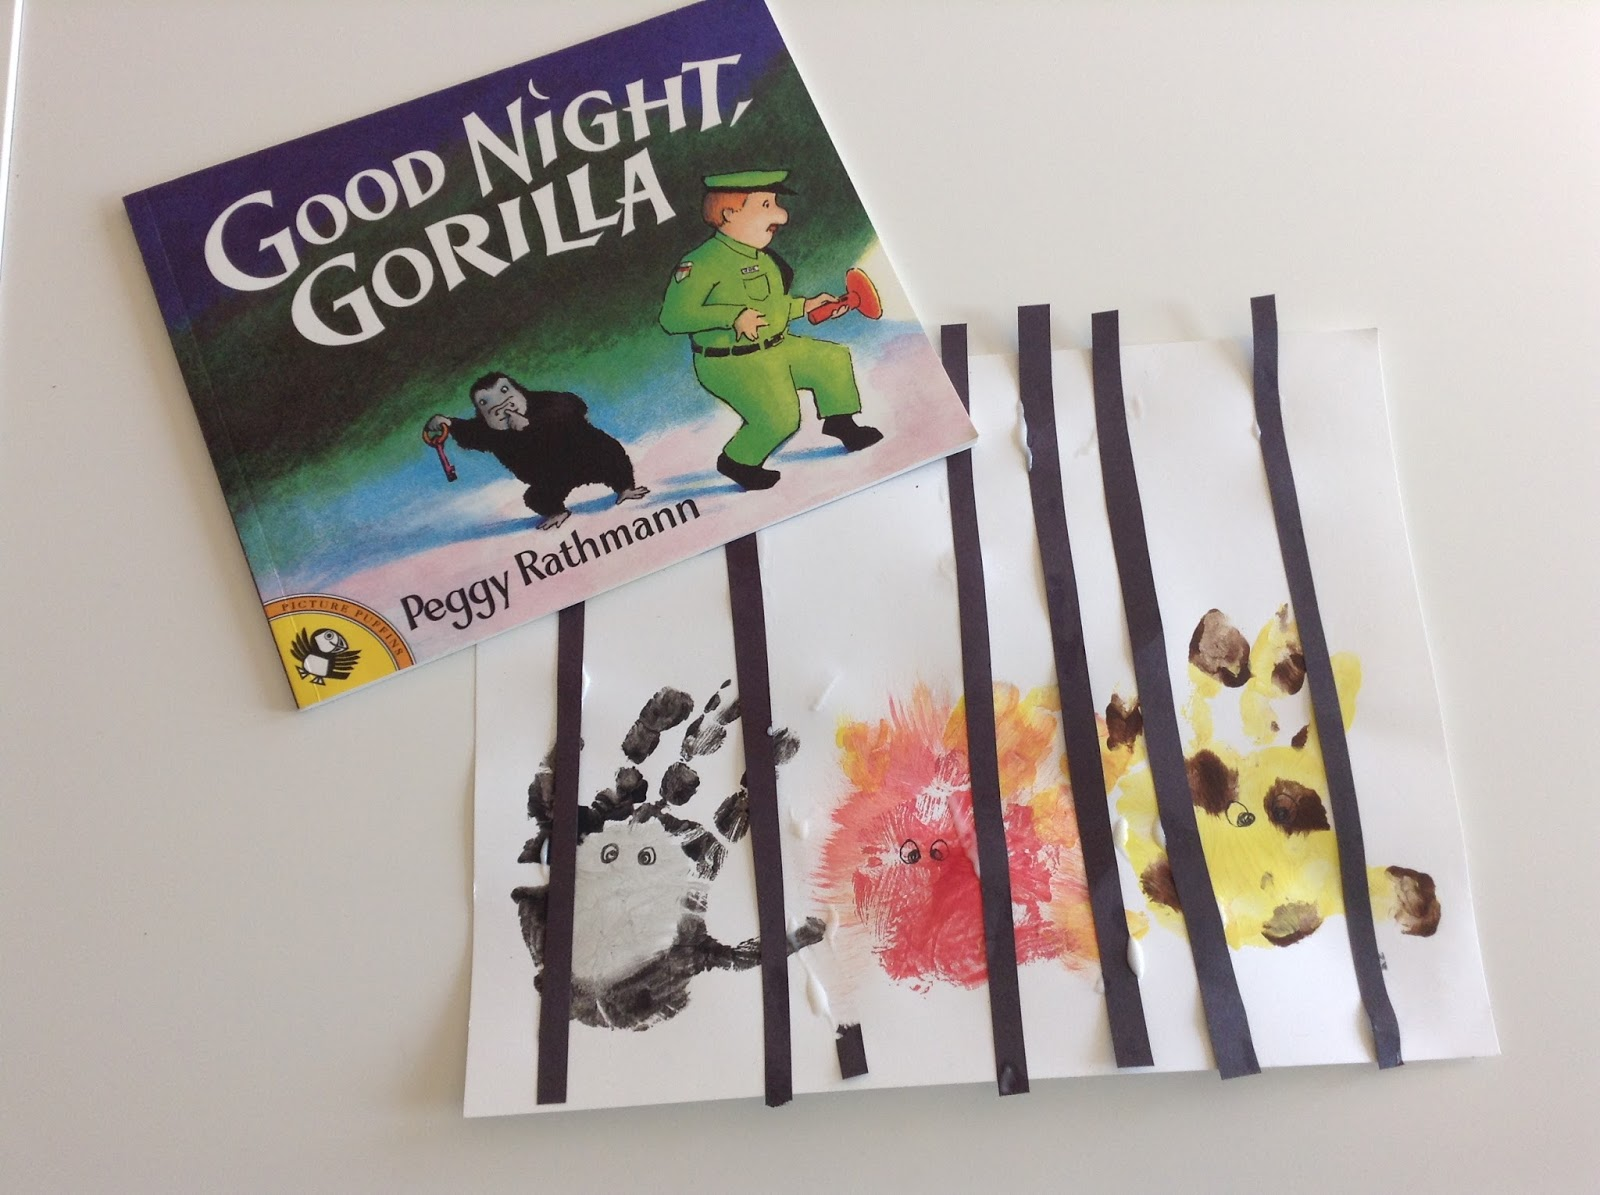 Teachermomplus3 Tot School Good Night Gorilla Craft